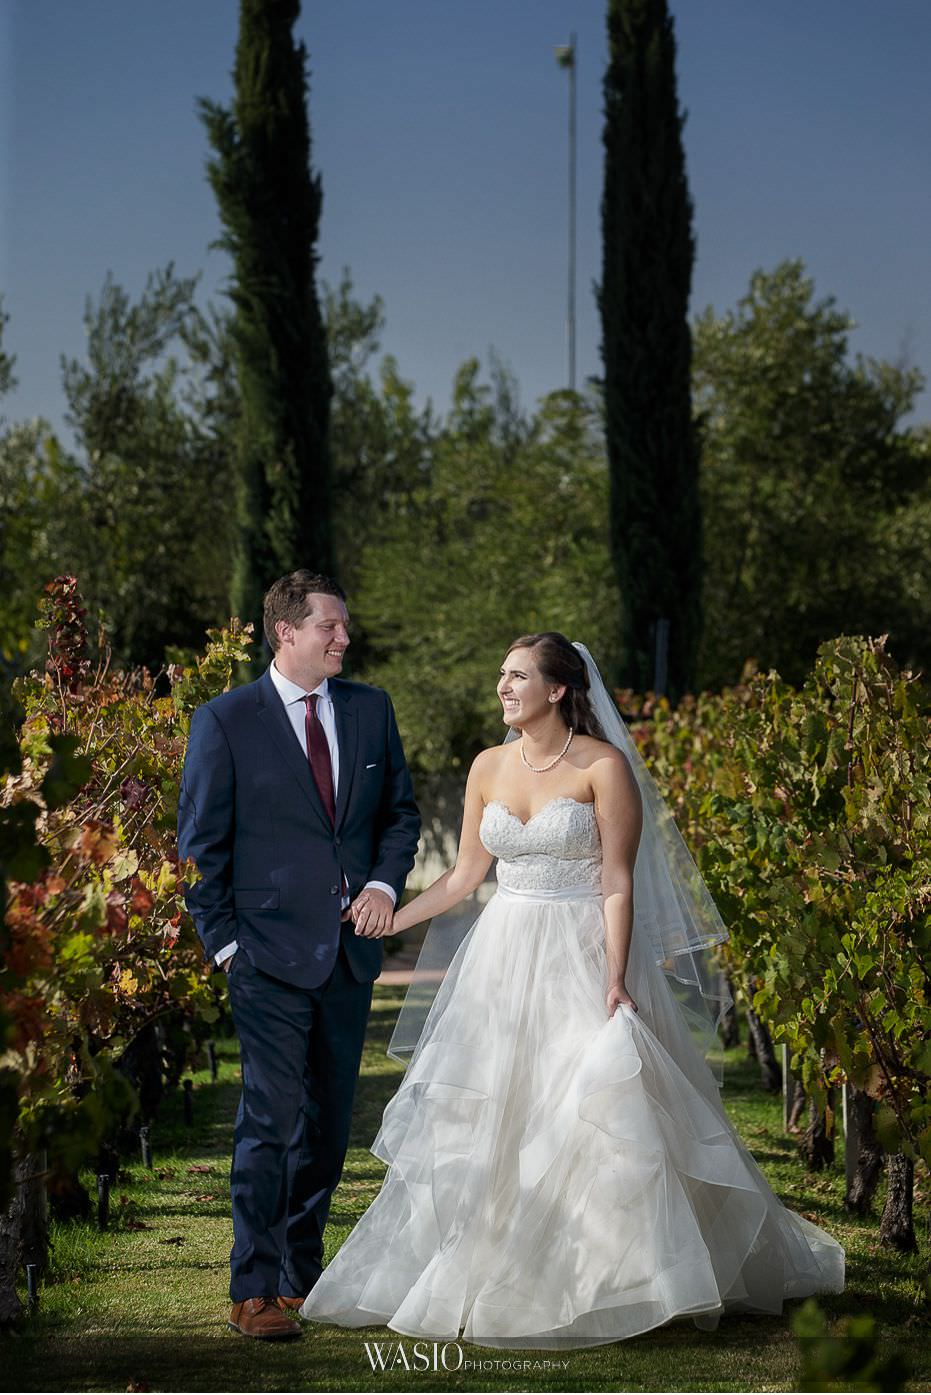 Mount-Palomar-Winery-Wedding-bride-groom-hand-holding-walking-winery-grapes-vineyard-outdoor-fall-colors-69 Mount Palomar Winery Wedding - Chelsea & Brandon